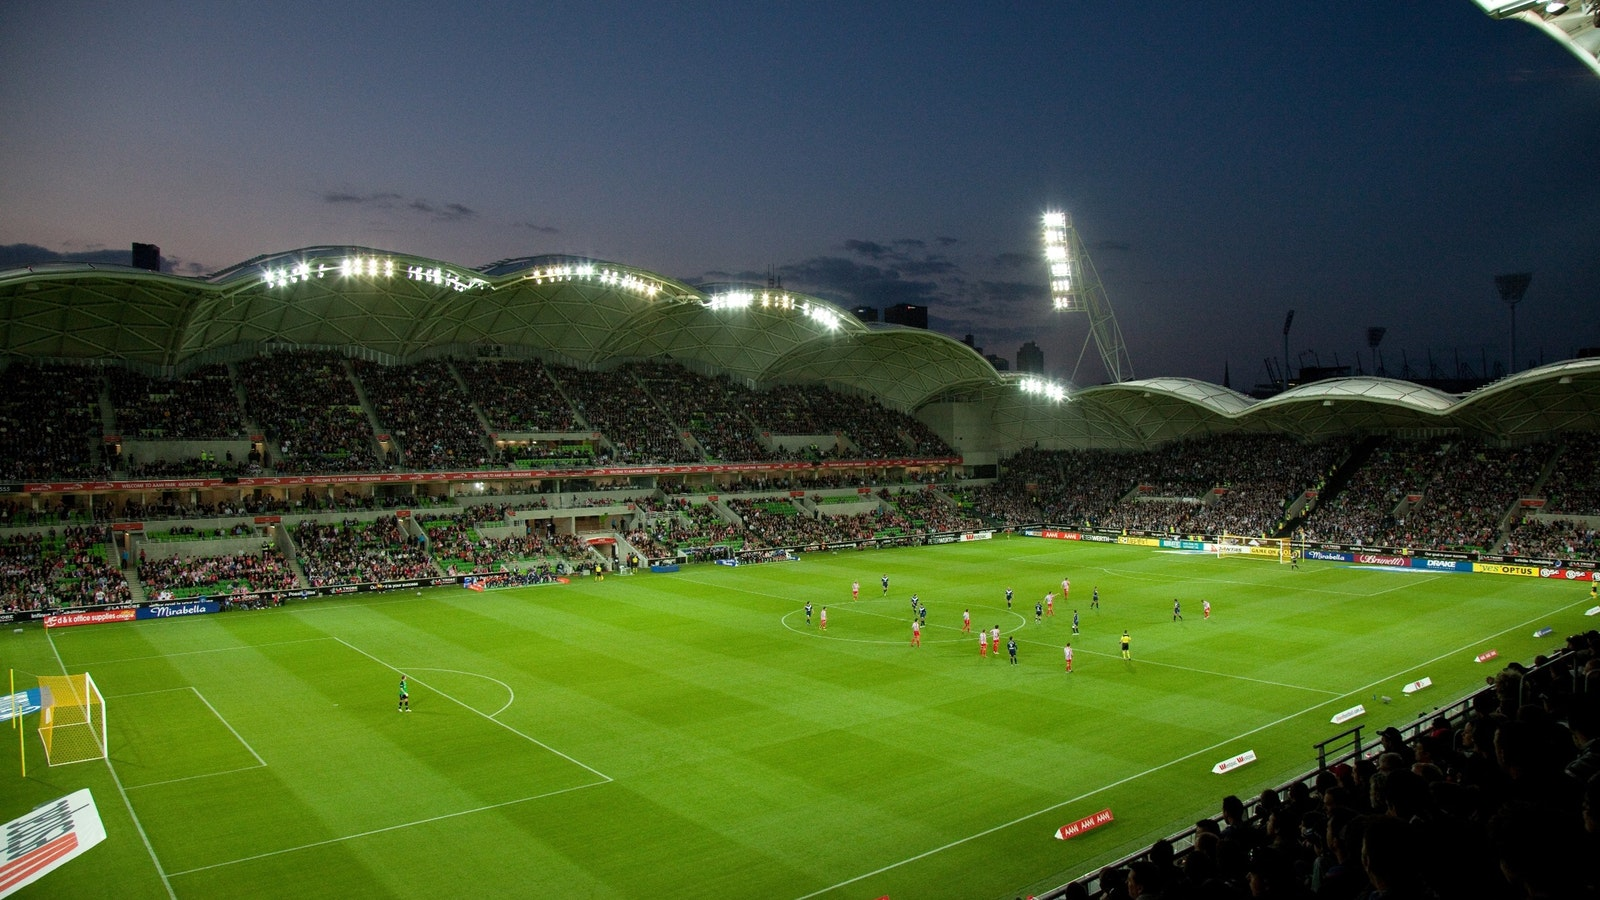 Melbourne victory/Melbourne city - Melbourne Rectangular StadiumCapacity: 30,050